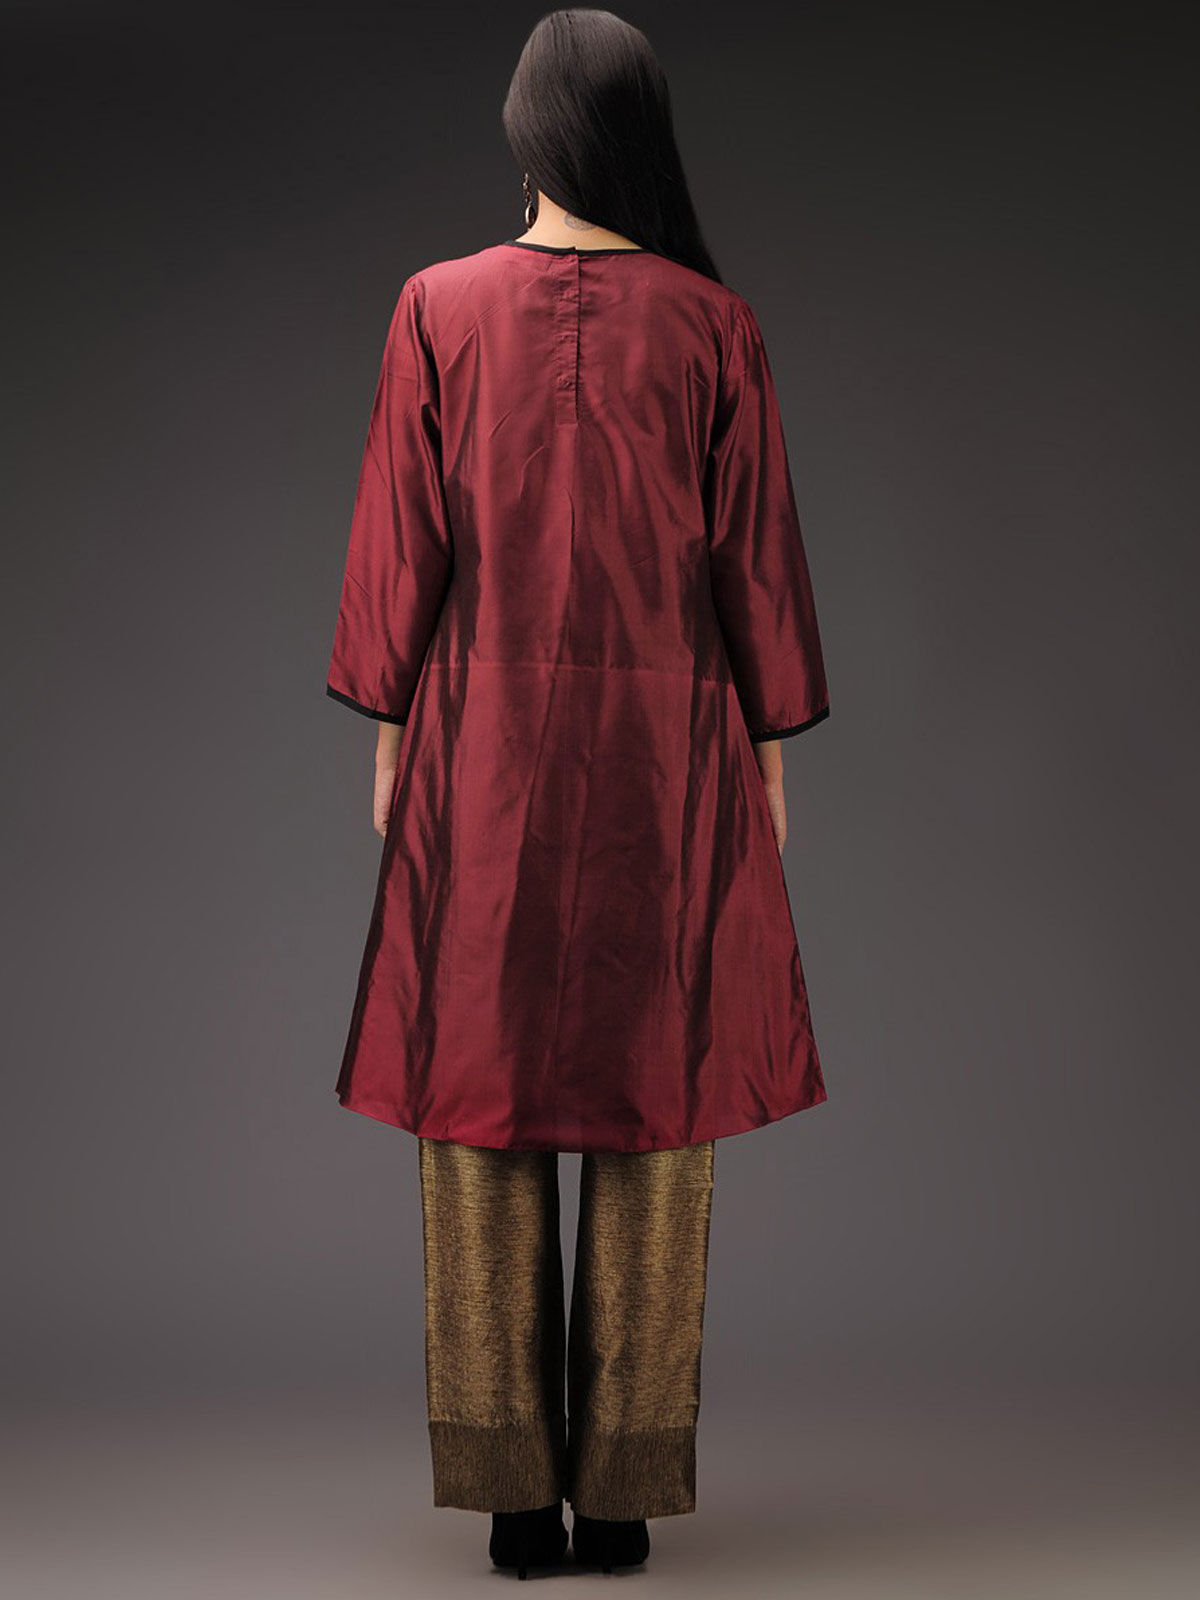 Raroon silk tunic with box pleat details